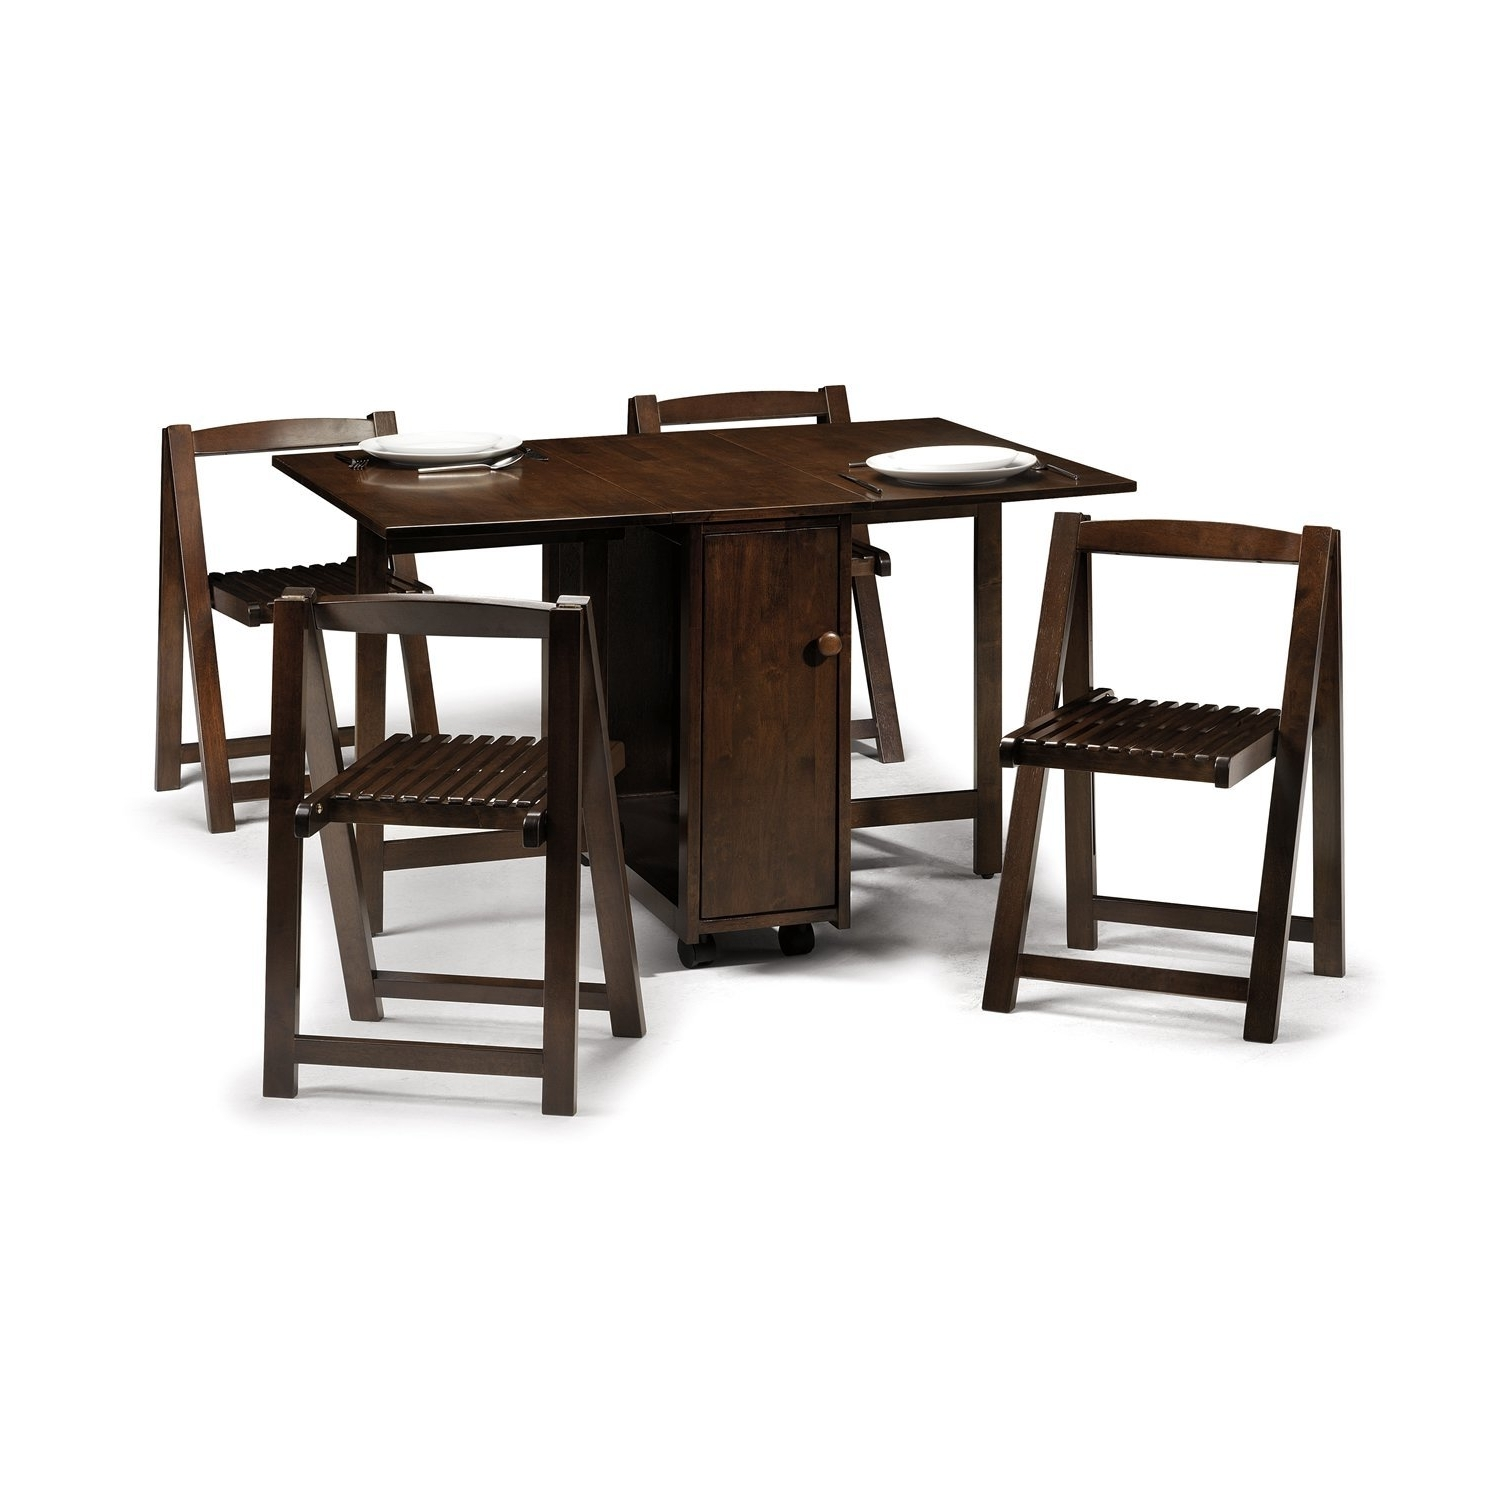 Trendy 35 Antique Drop Leaf Dining Table Designs Table Orange Leather With Regard To Folding Dining Table And Chairs Sets (View 9 of 25)